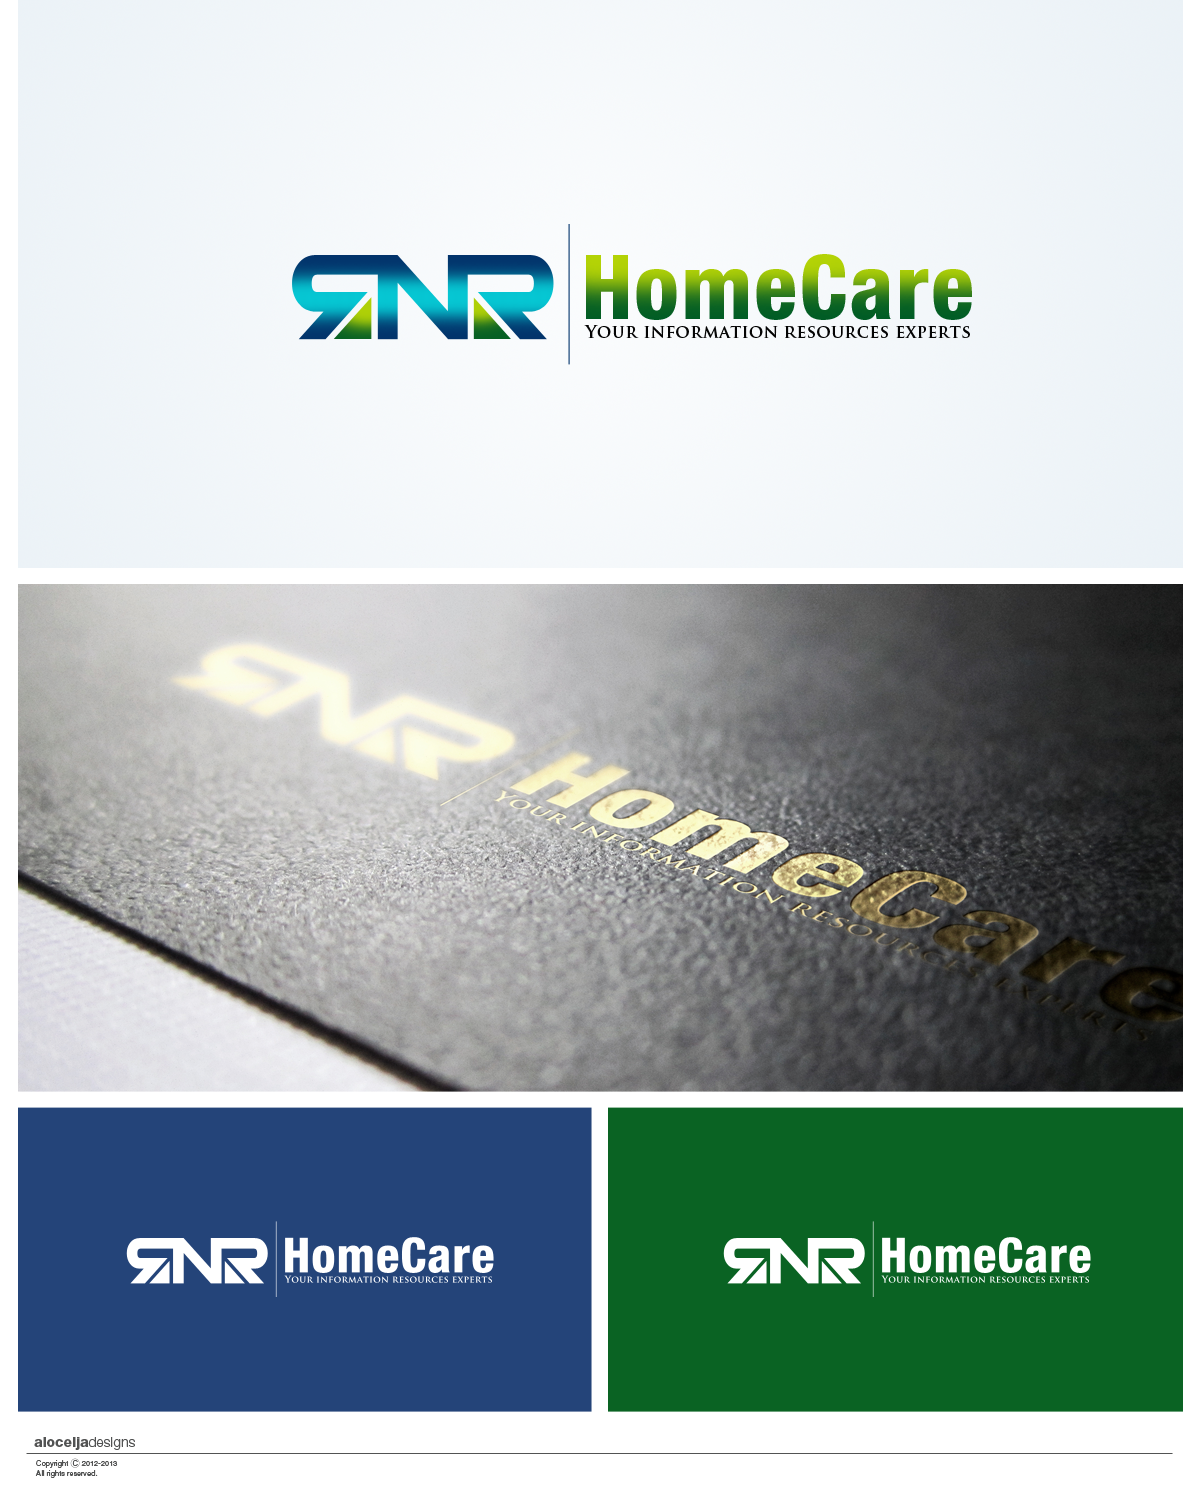 Logo Design by alocelja - Entry No. 49 in the Logo Design Contest Imaginative Logo Design for RNR HomeCare.